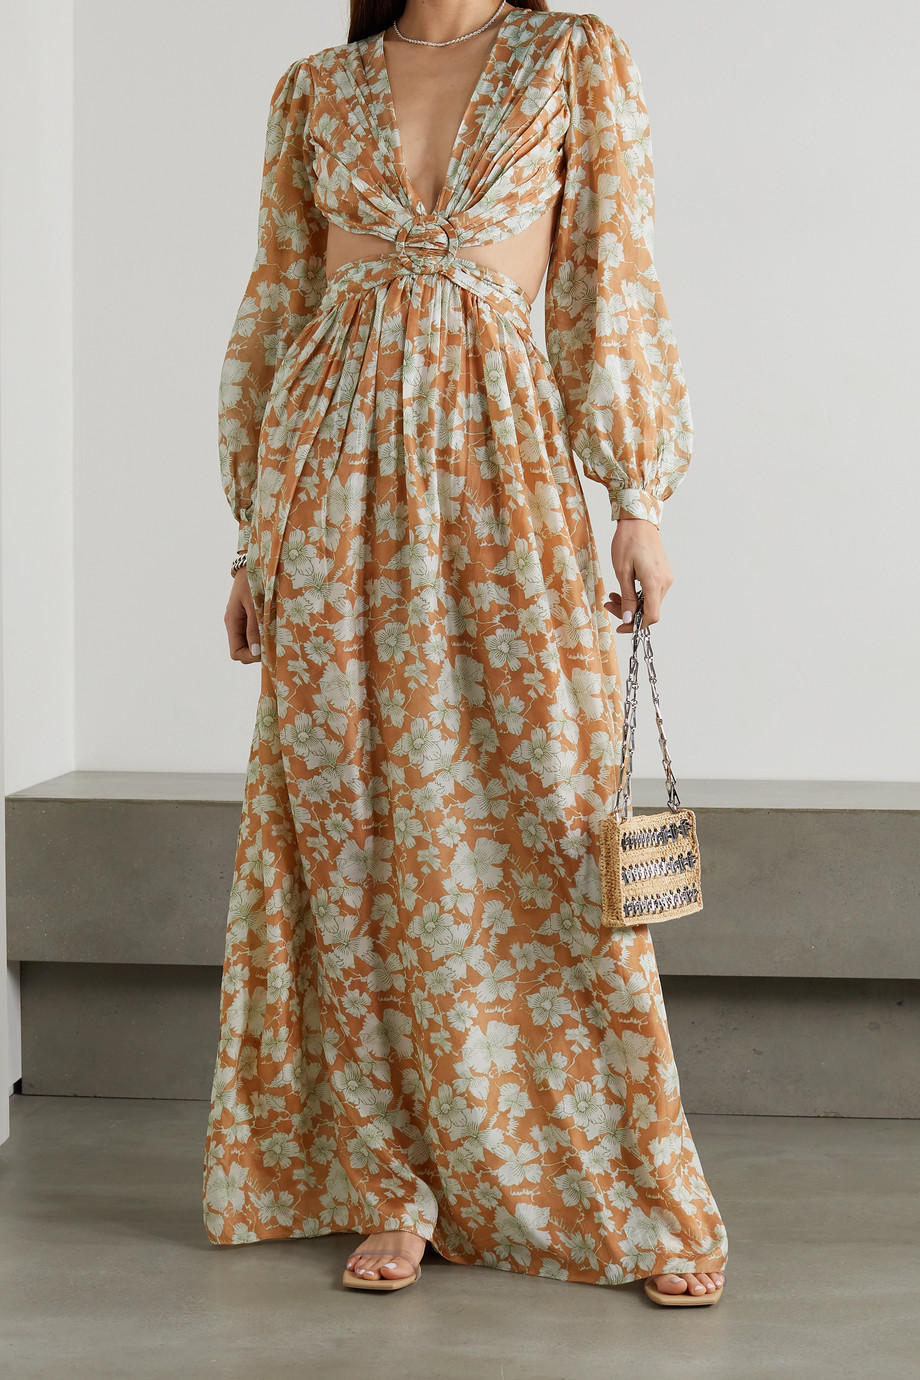 HANNAH ARTWEAR + NET SUSTAIN Rio cutout floral-print silk maxi dress